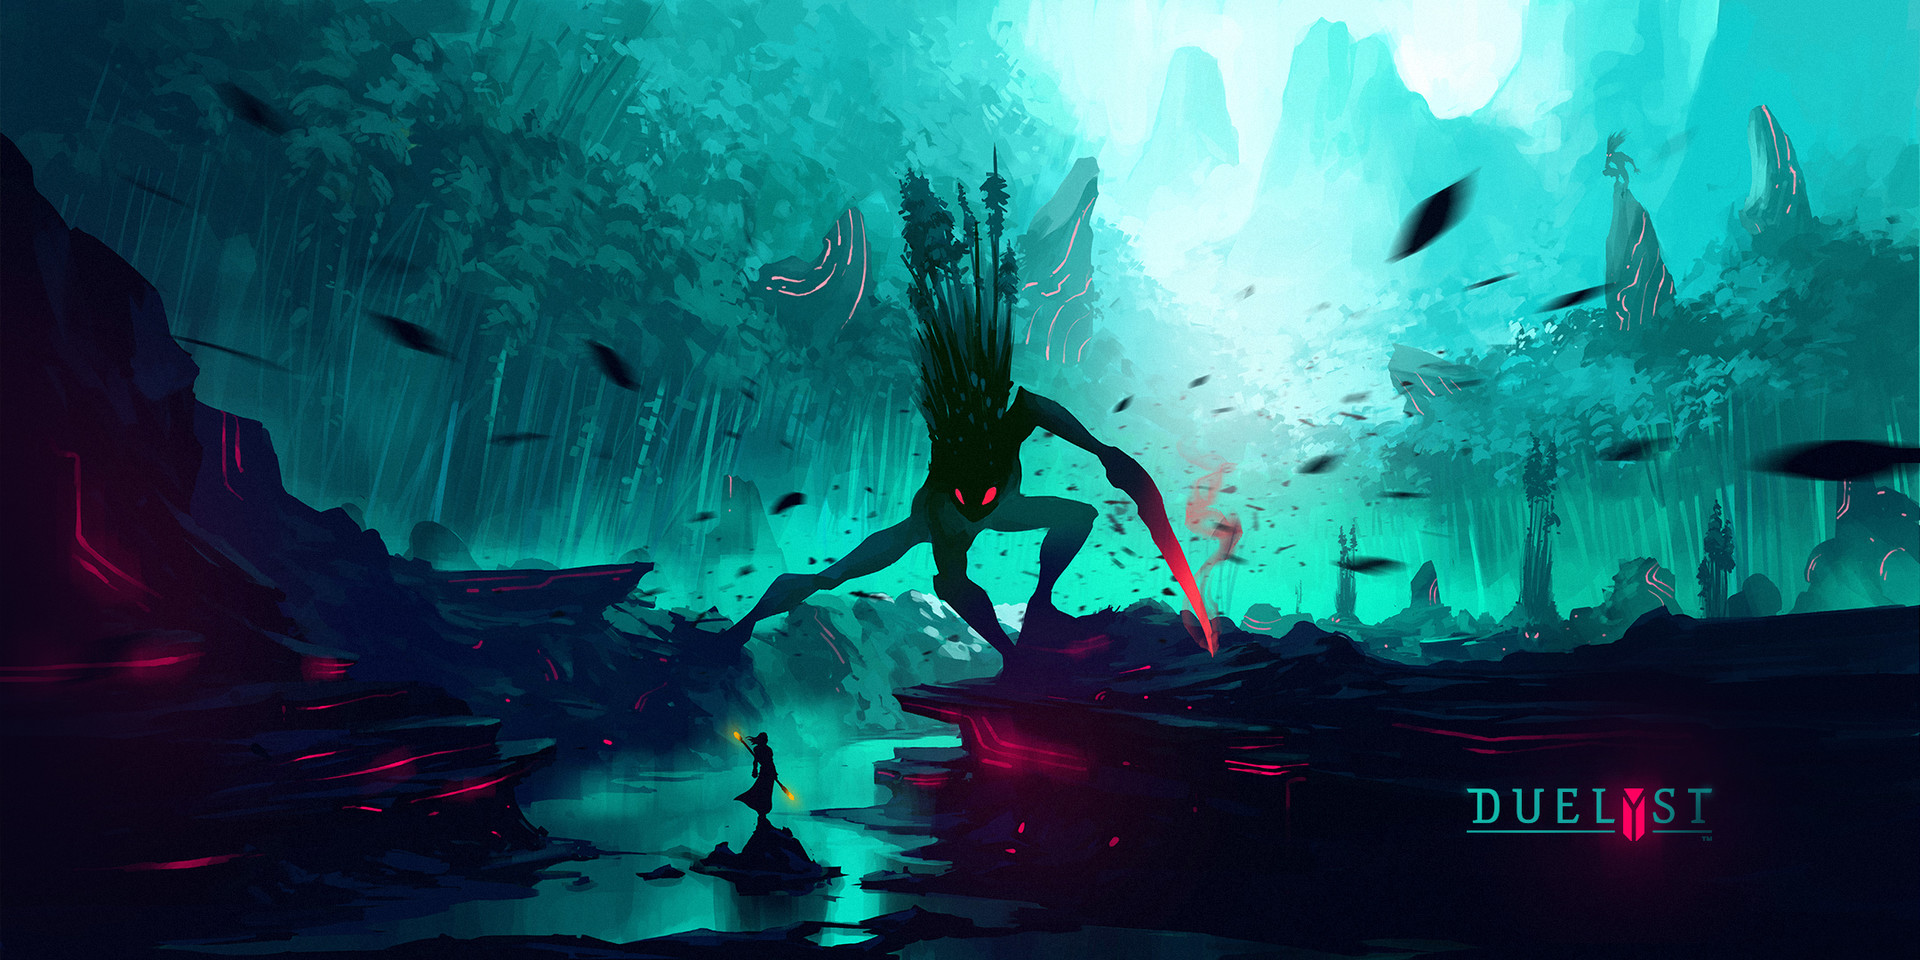 Duelyst_digital_painting_illustration_nature_environment